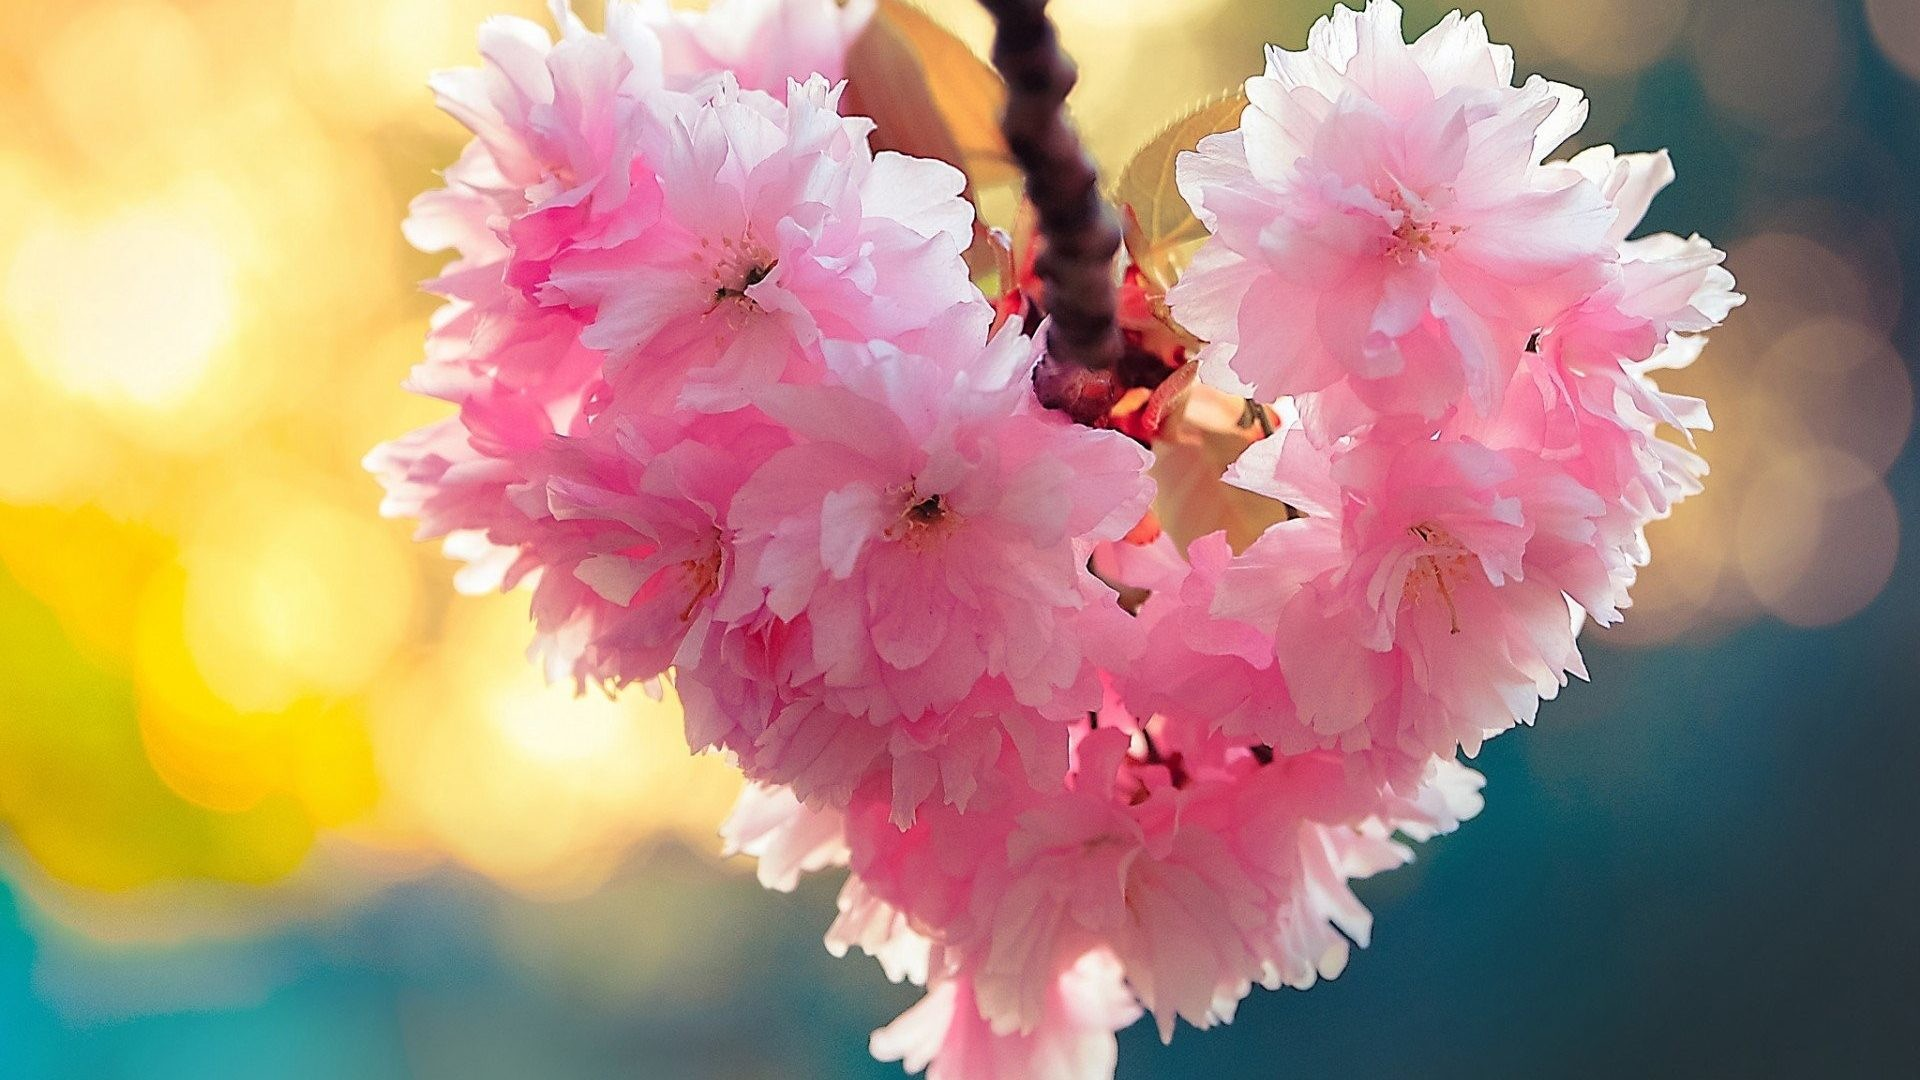 Flowers Spring Nature Love Heart Bloom Android Hd Wallpapers Free Download  – 1920×1200